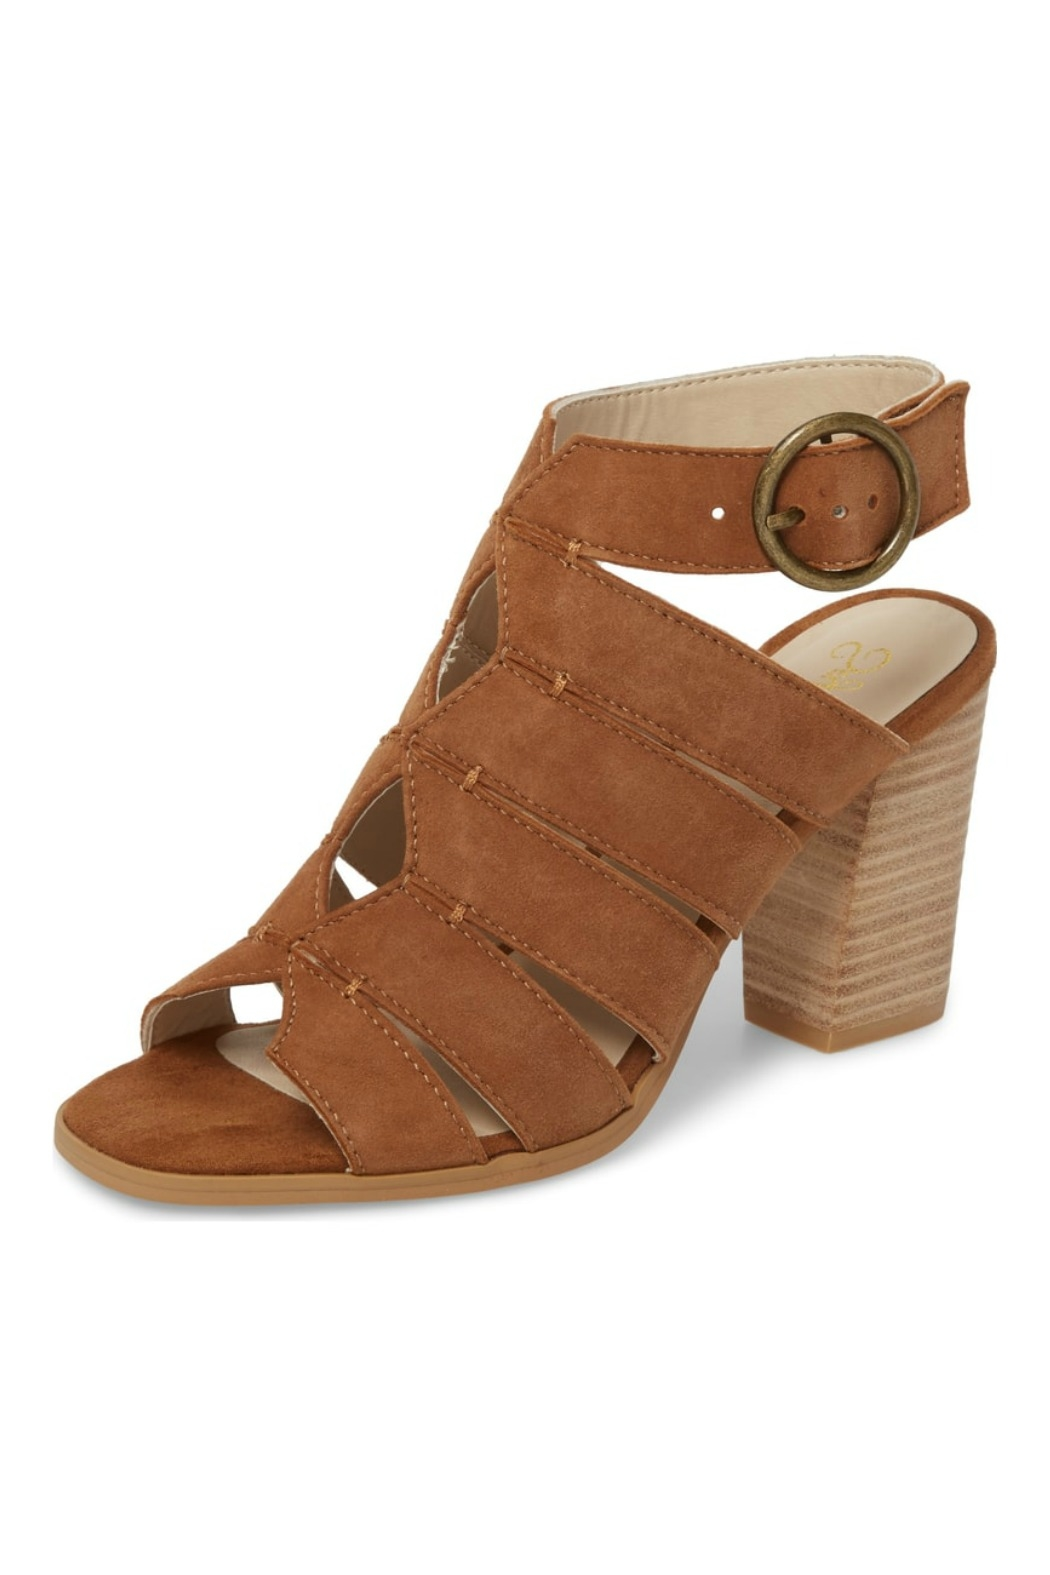 Completely Engaged Tan Suede Stack Heel